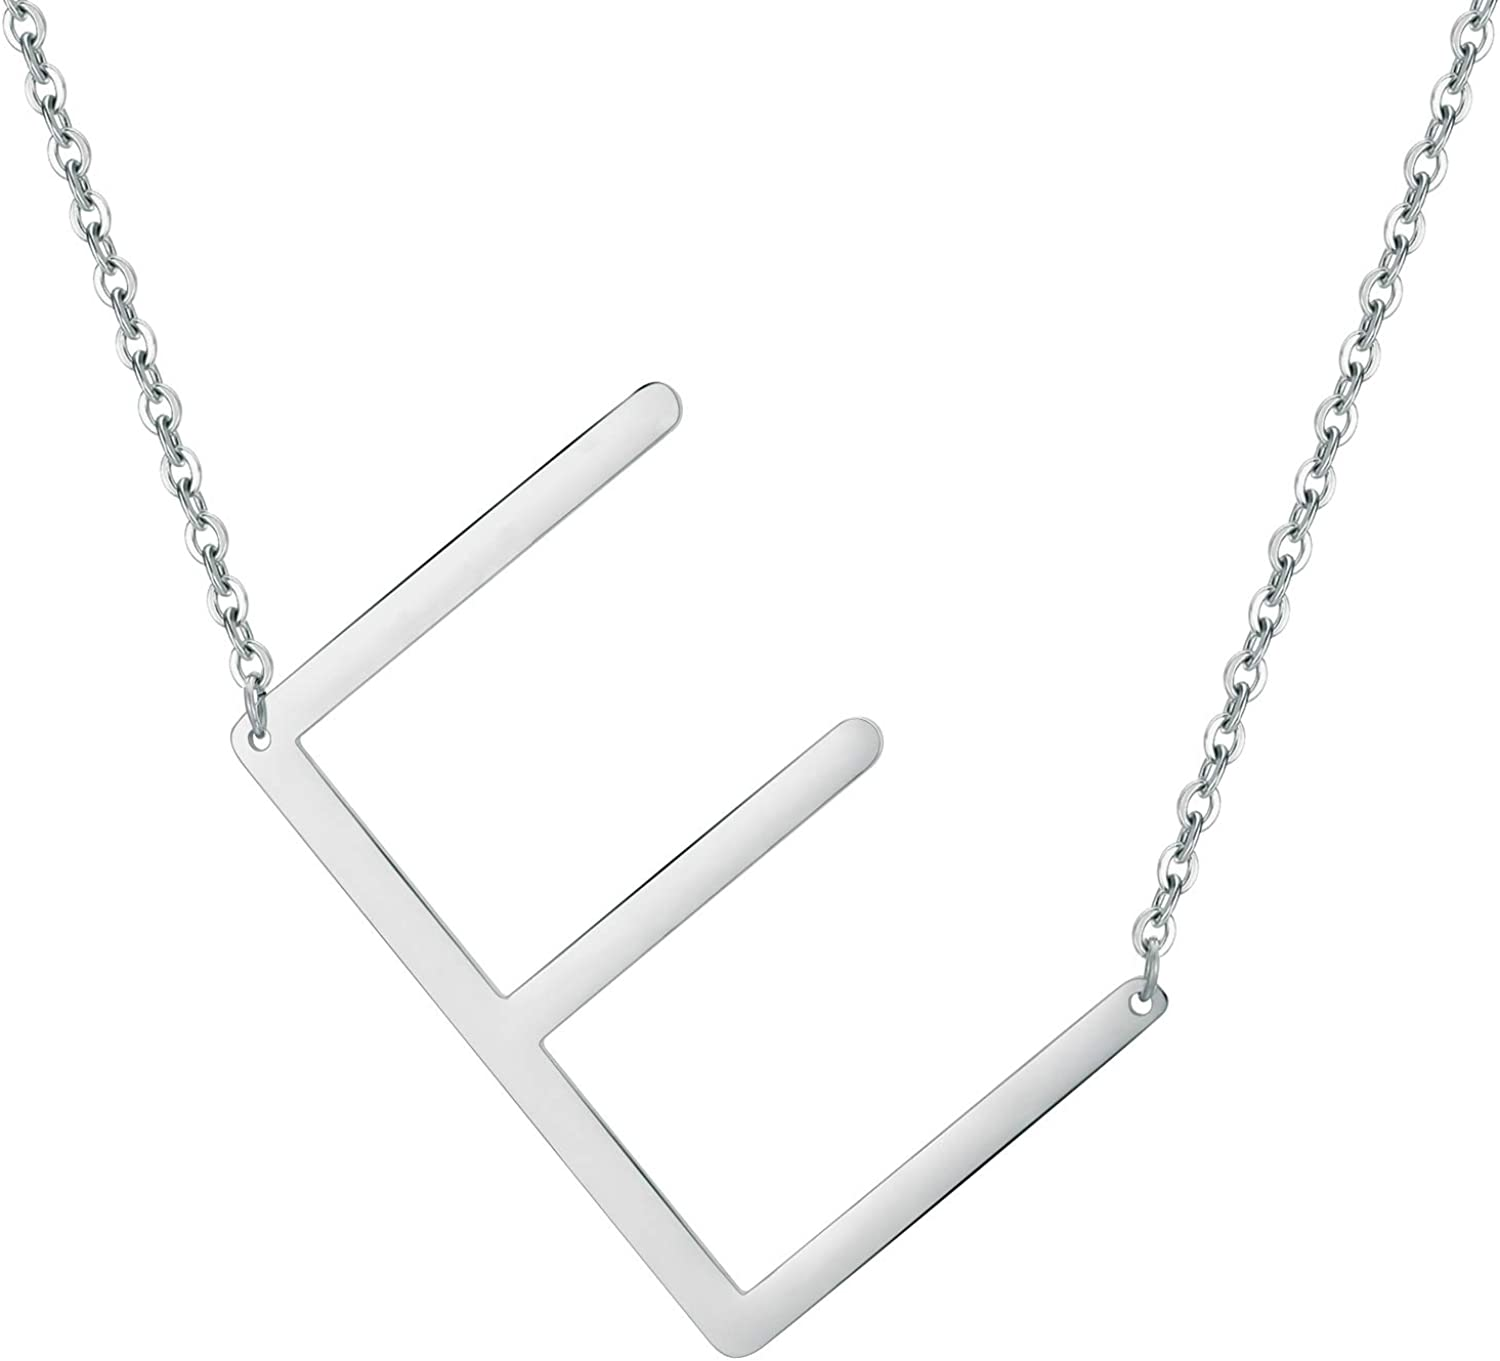 Regular dealer IEFWELL Large Sideways Initial Necklace - Silver Gold Women for Ranking integrated 1st place